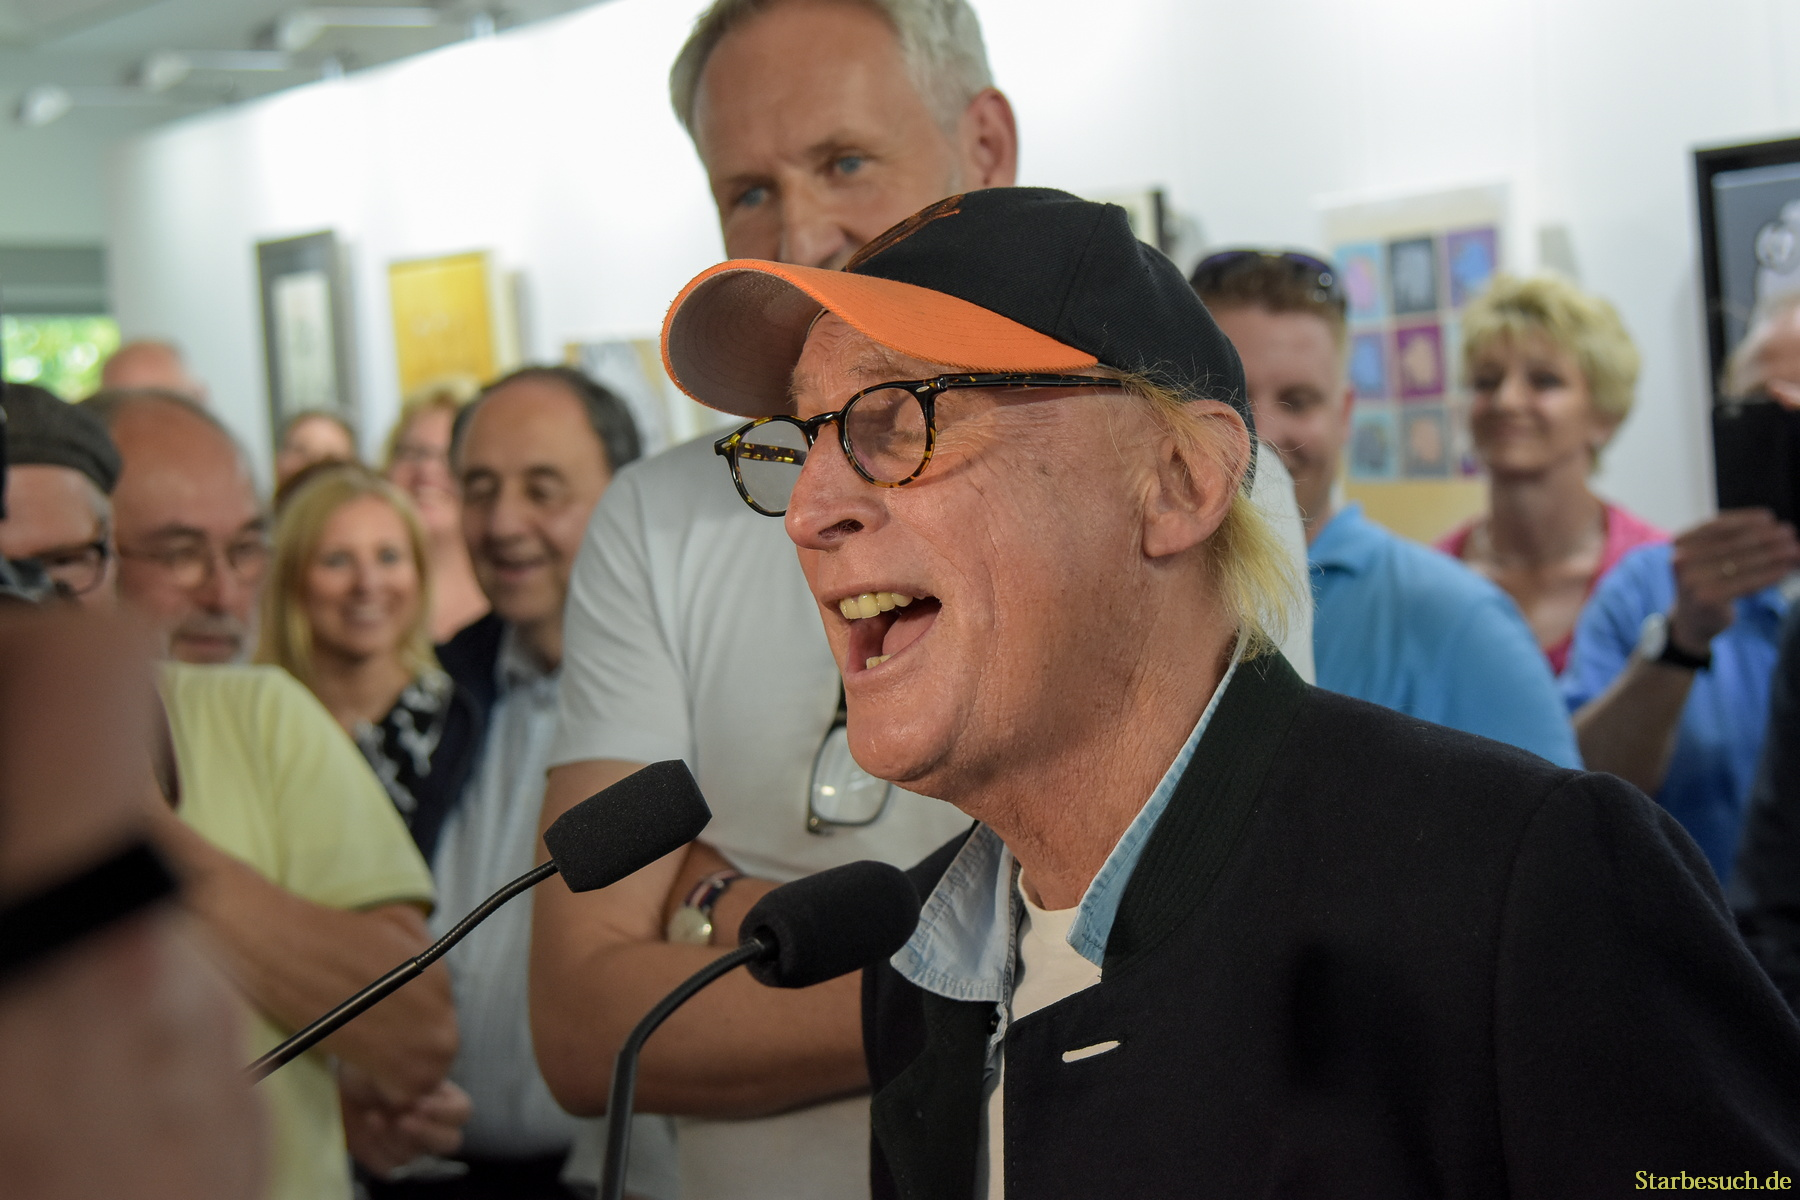 Kelkheim, Germany. 1st Jun, 2017. Otto Waalkes, German comedian, singer, painter, exhibition opening. The exhibition will be from June 2nd - June 25th 2017